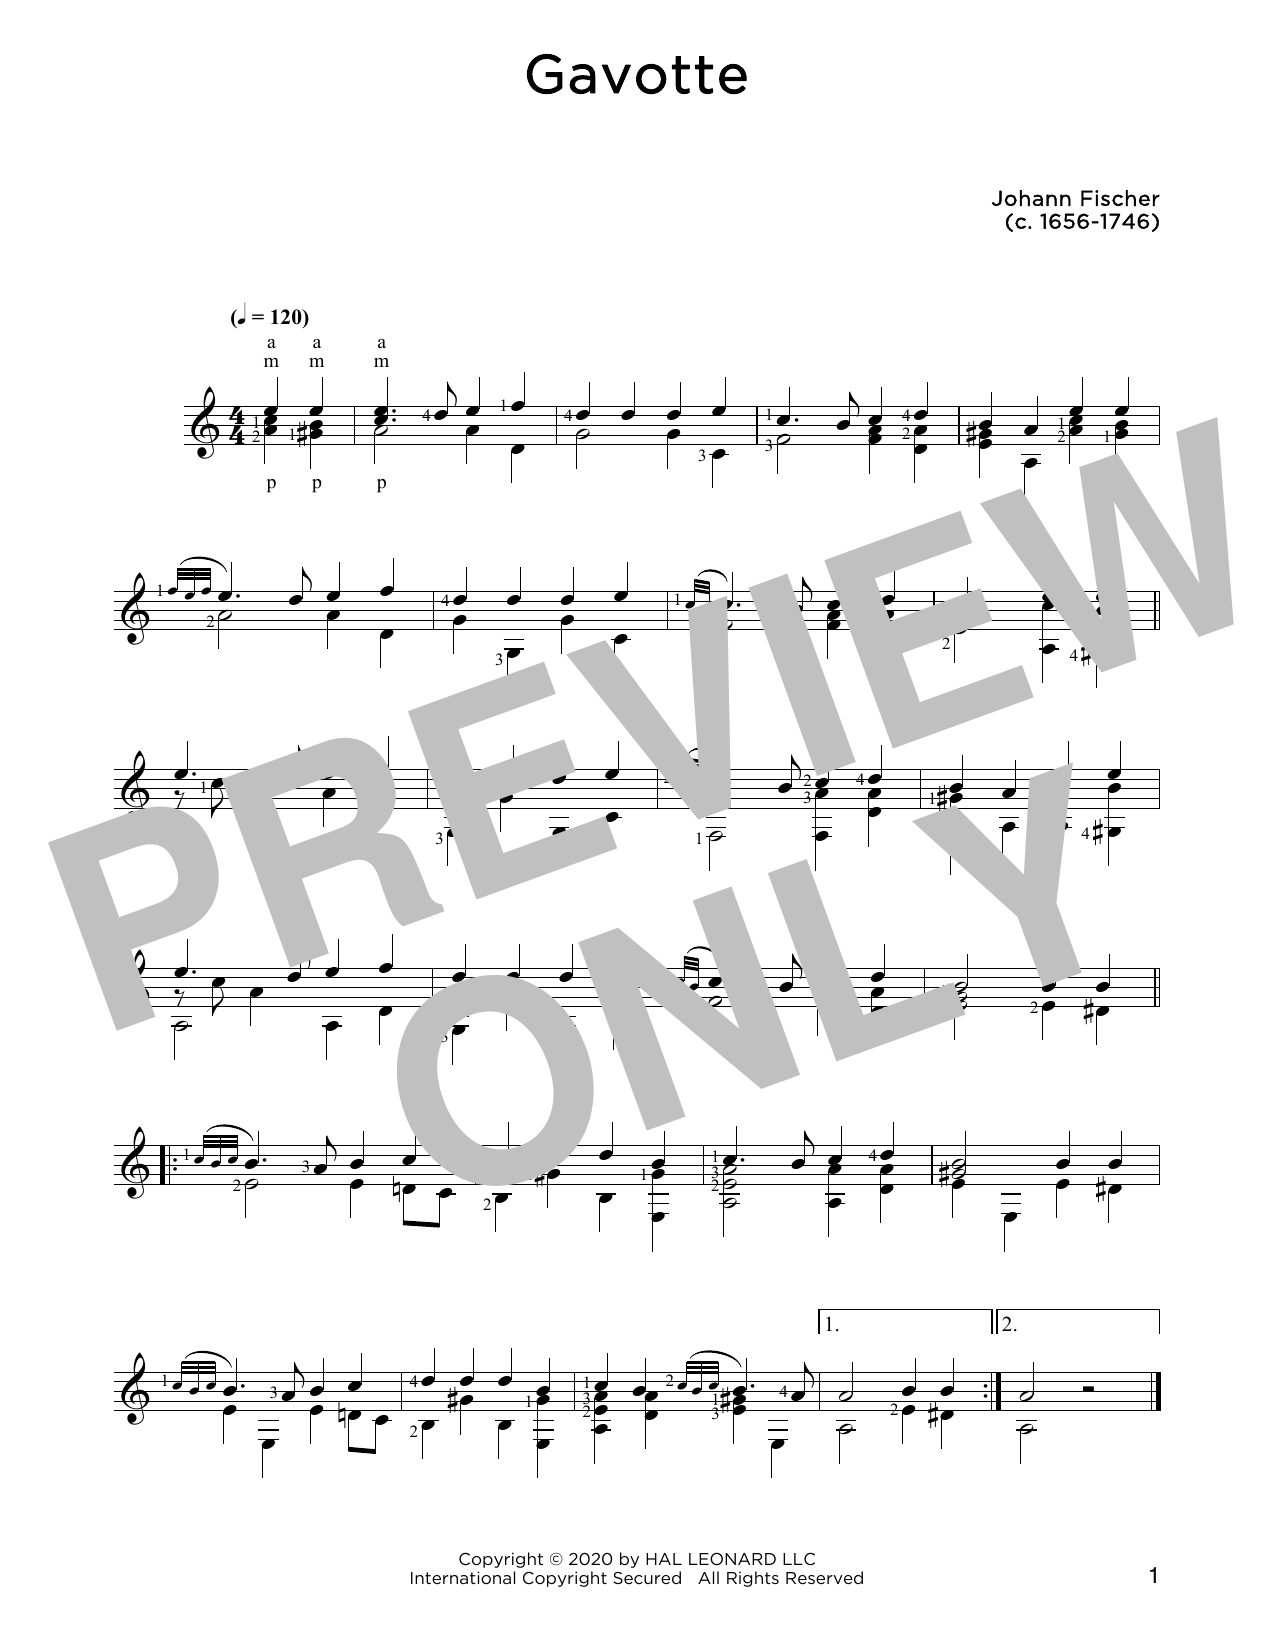 Johann Fischer Gavotte sheet music notes and chords. Download Printable PDF.